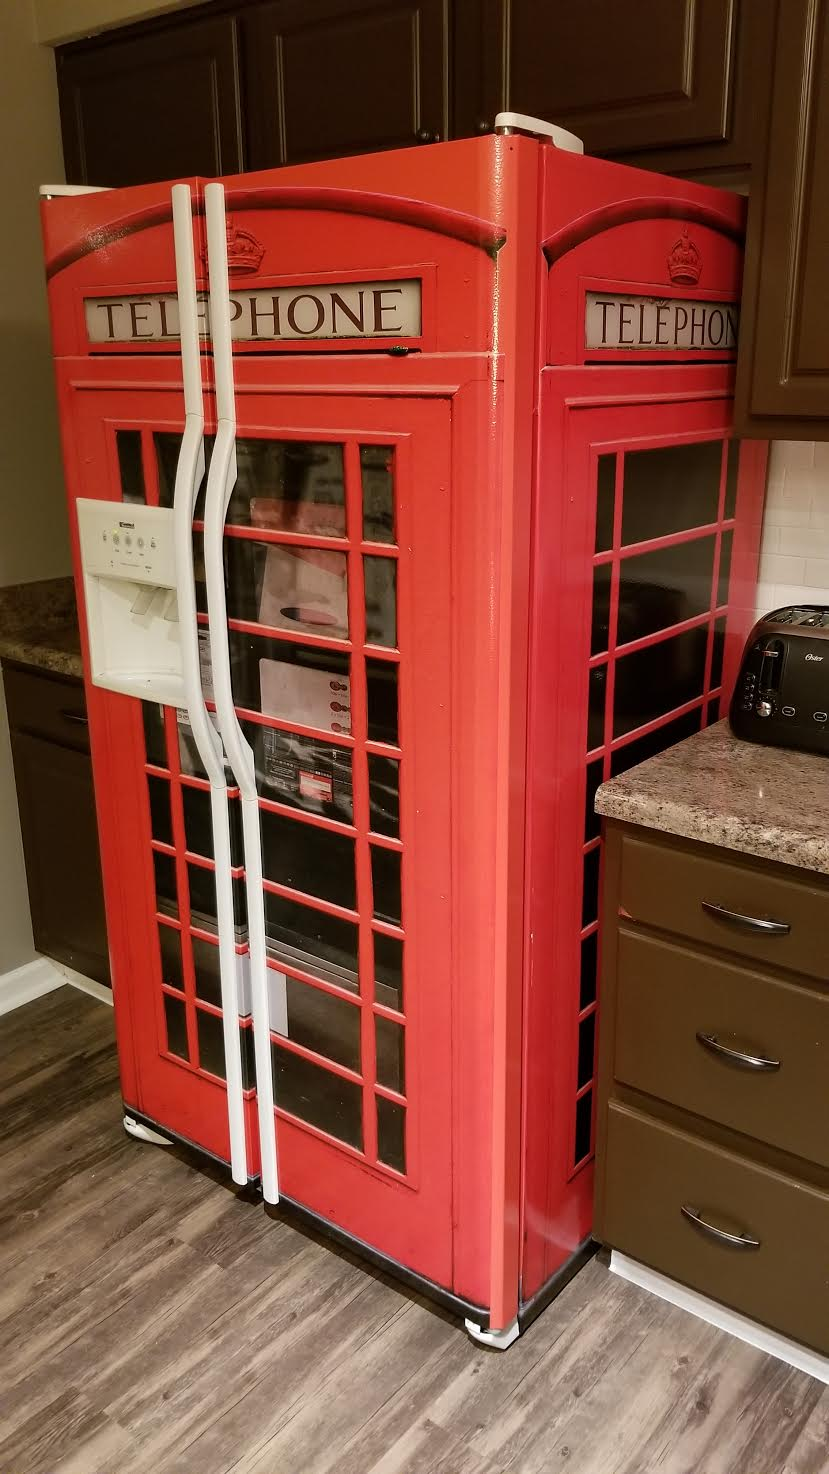 Red Telephone Box Refrigerator wrap Side by side